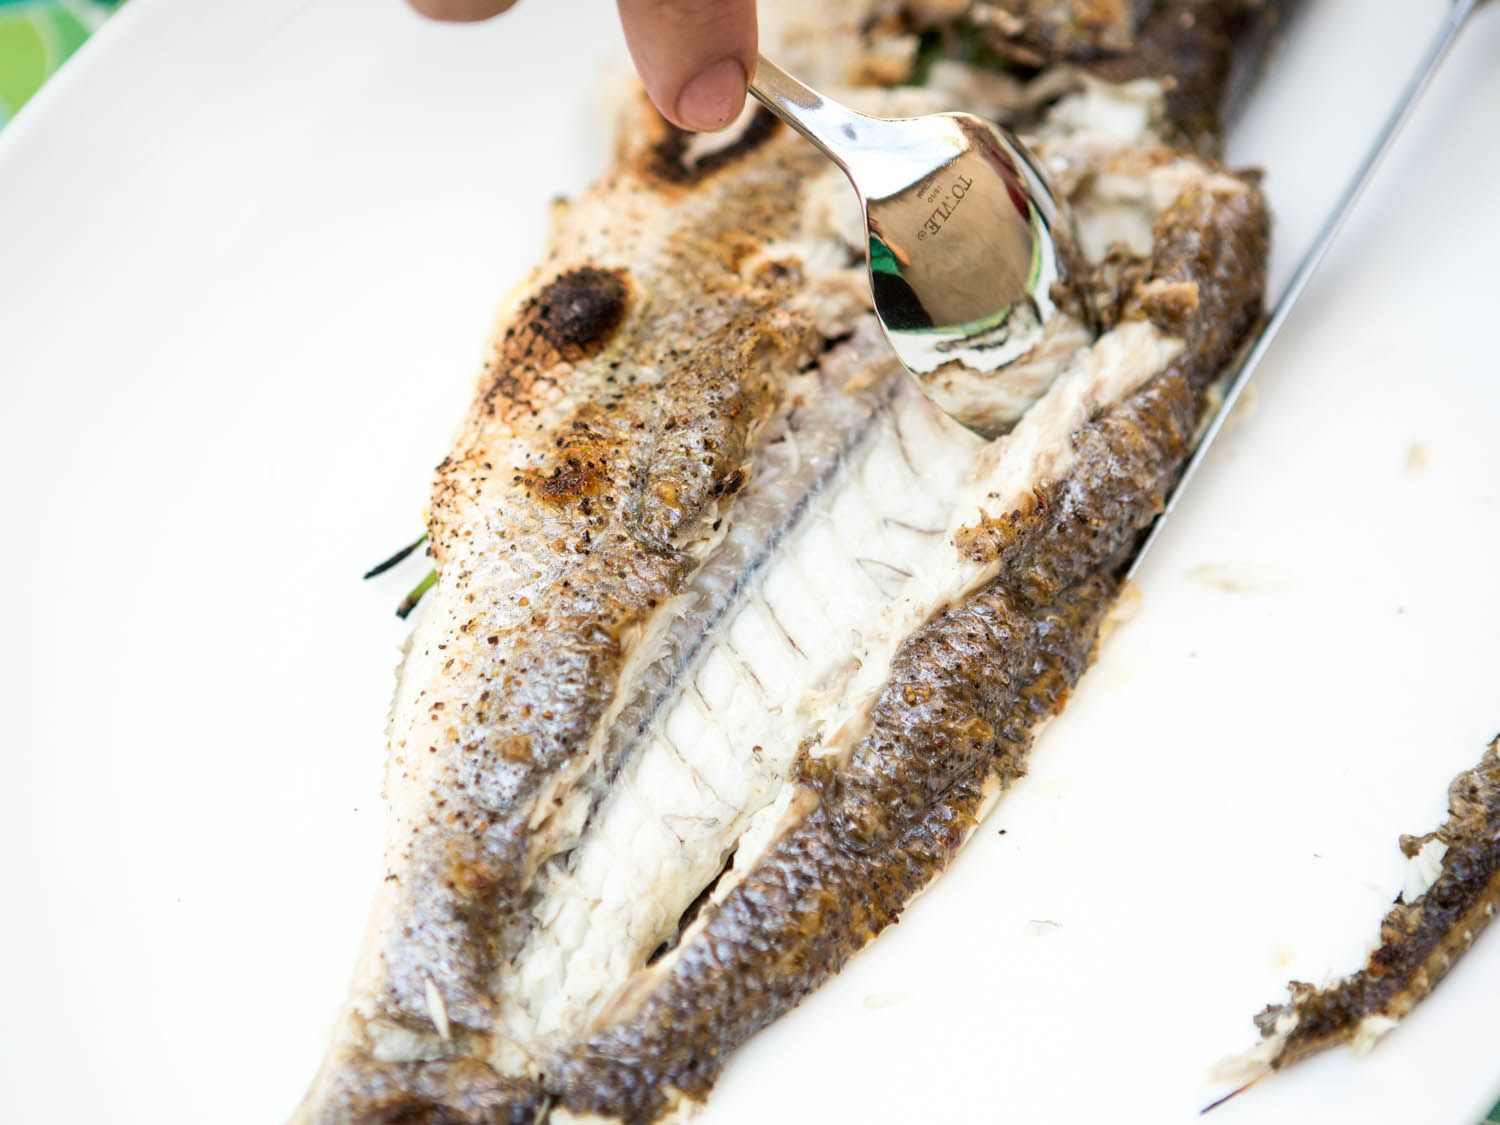 20140708-how-to-serve-whole-fish-vicky-wasik-11.jpg